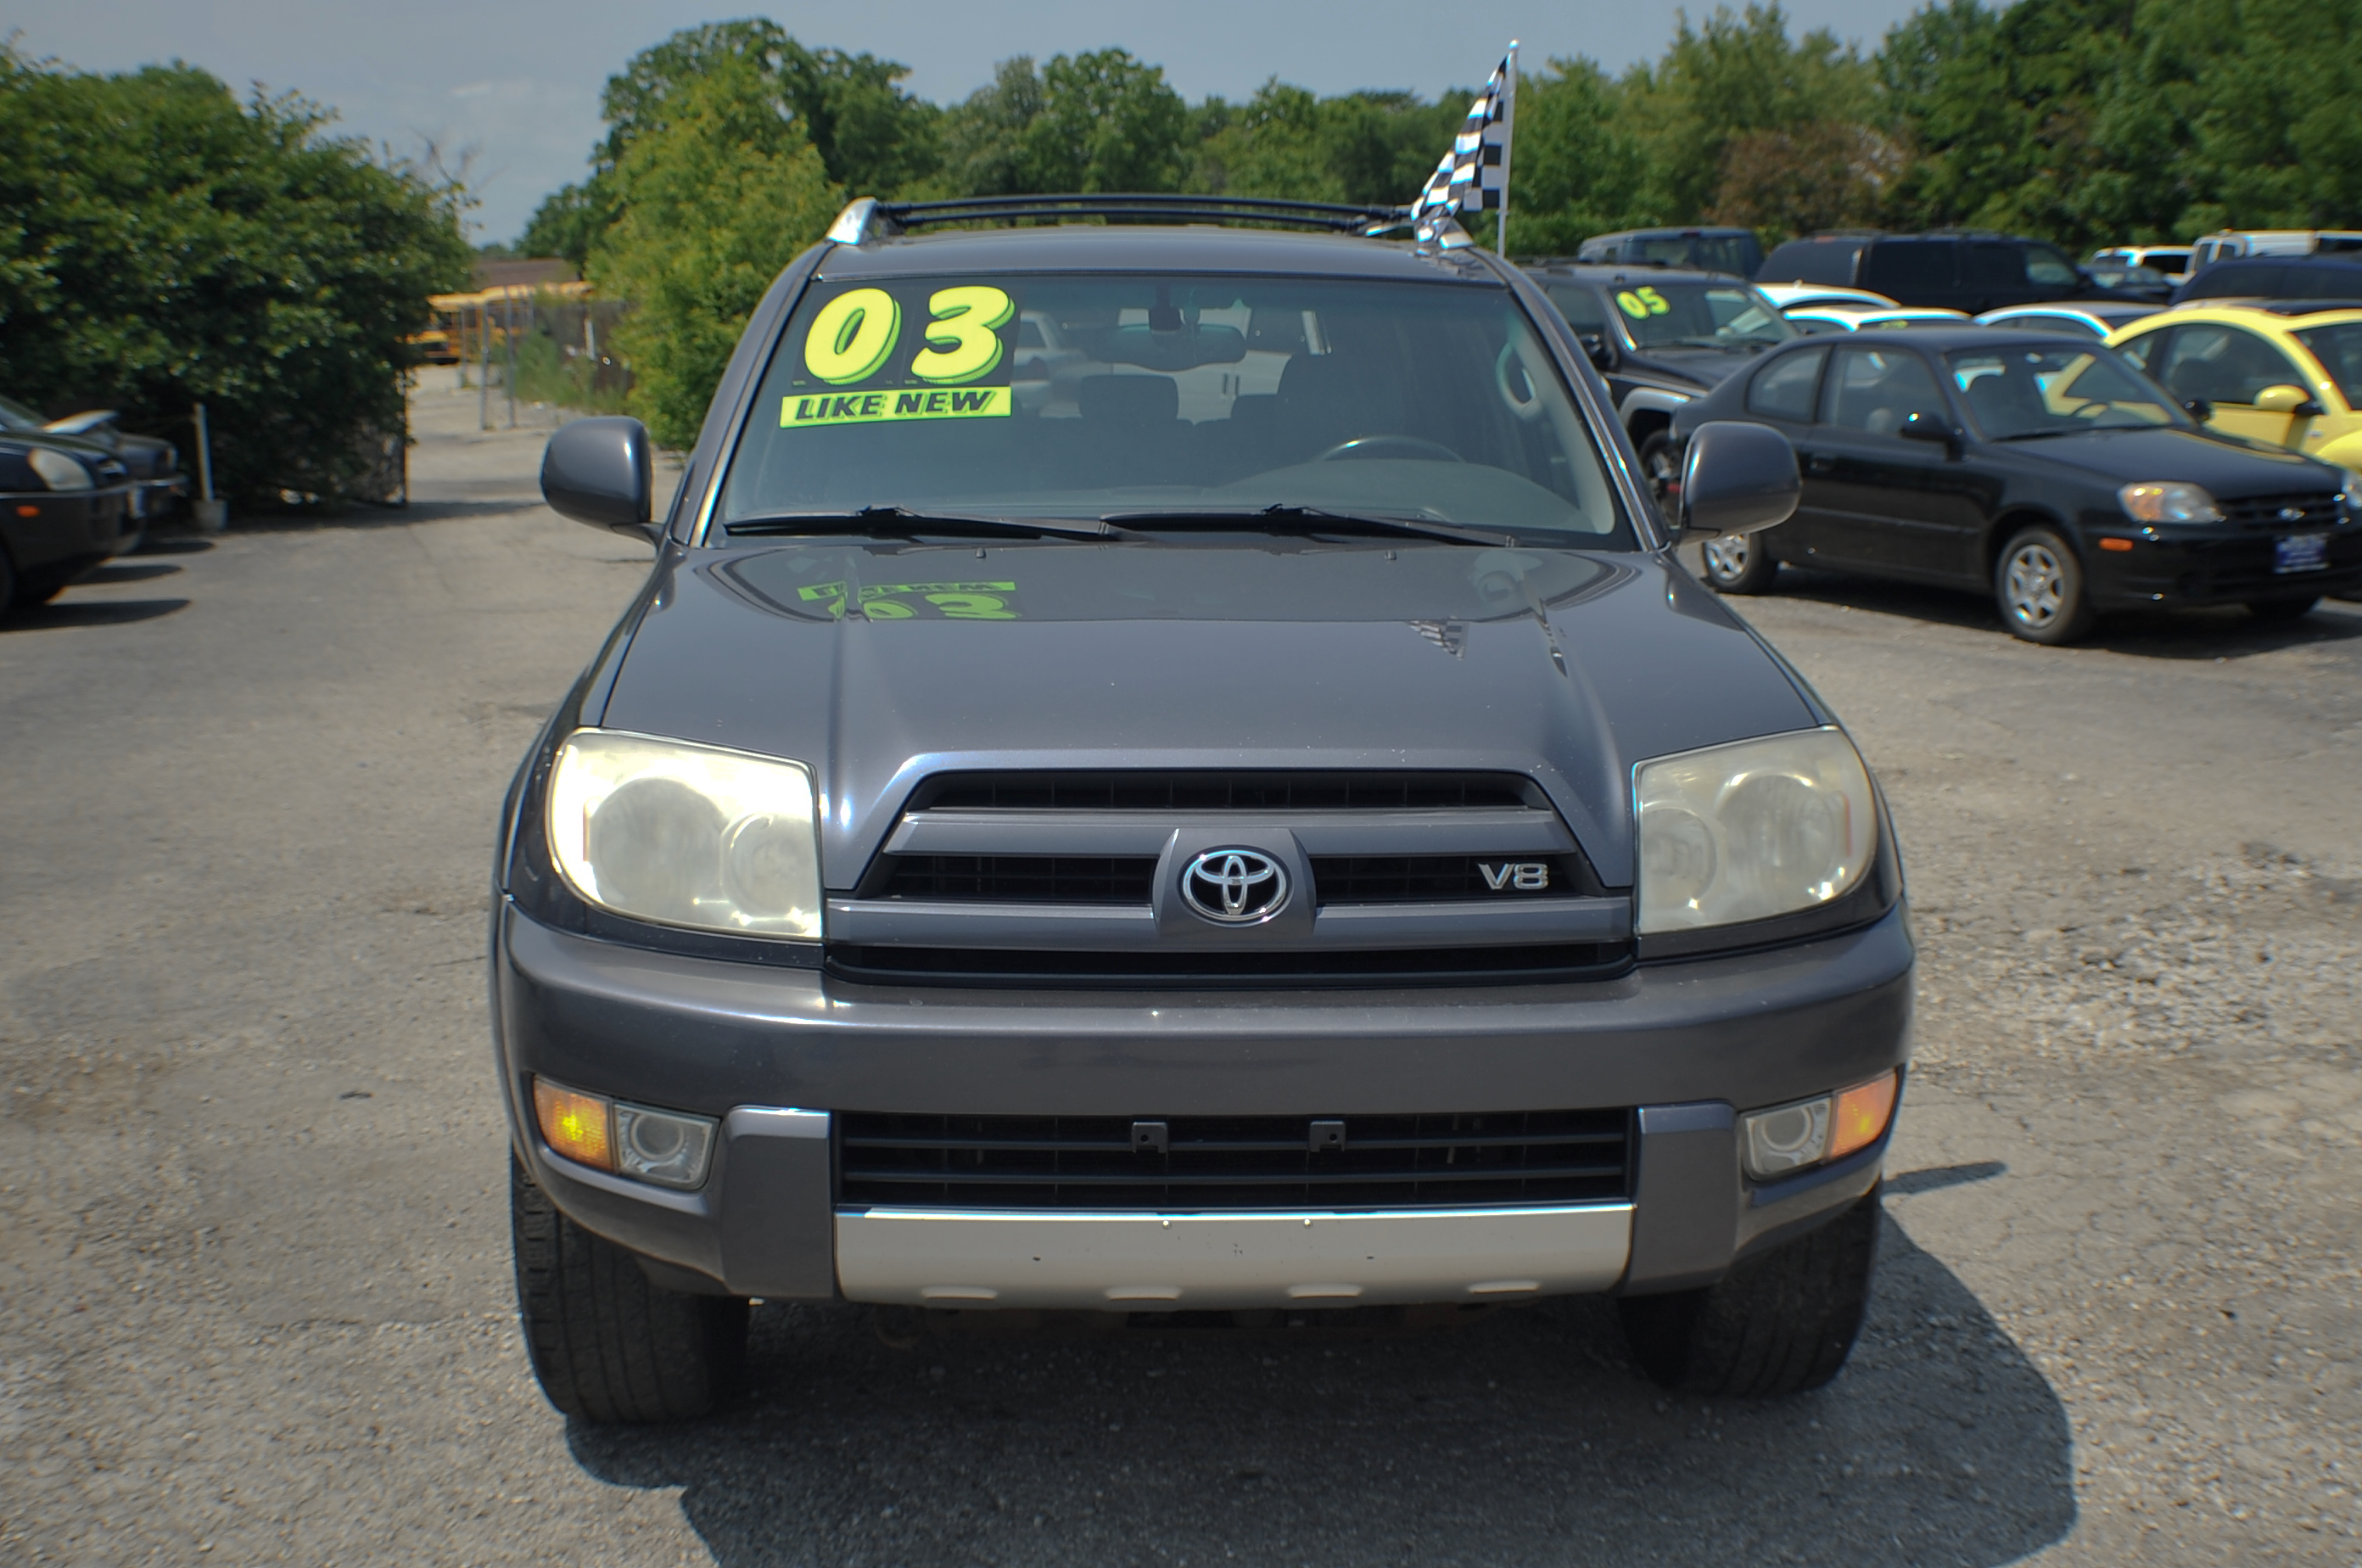 2003 Toyota 4Runner Gray 4x4 SUV Used Car Sale Libertyville Beach Park